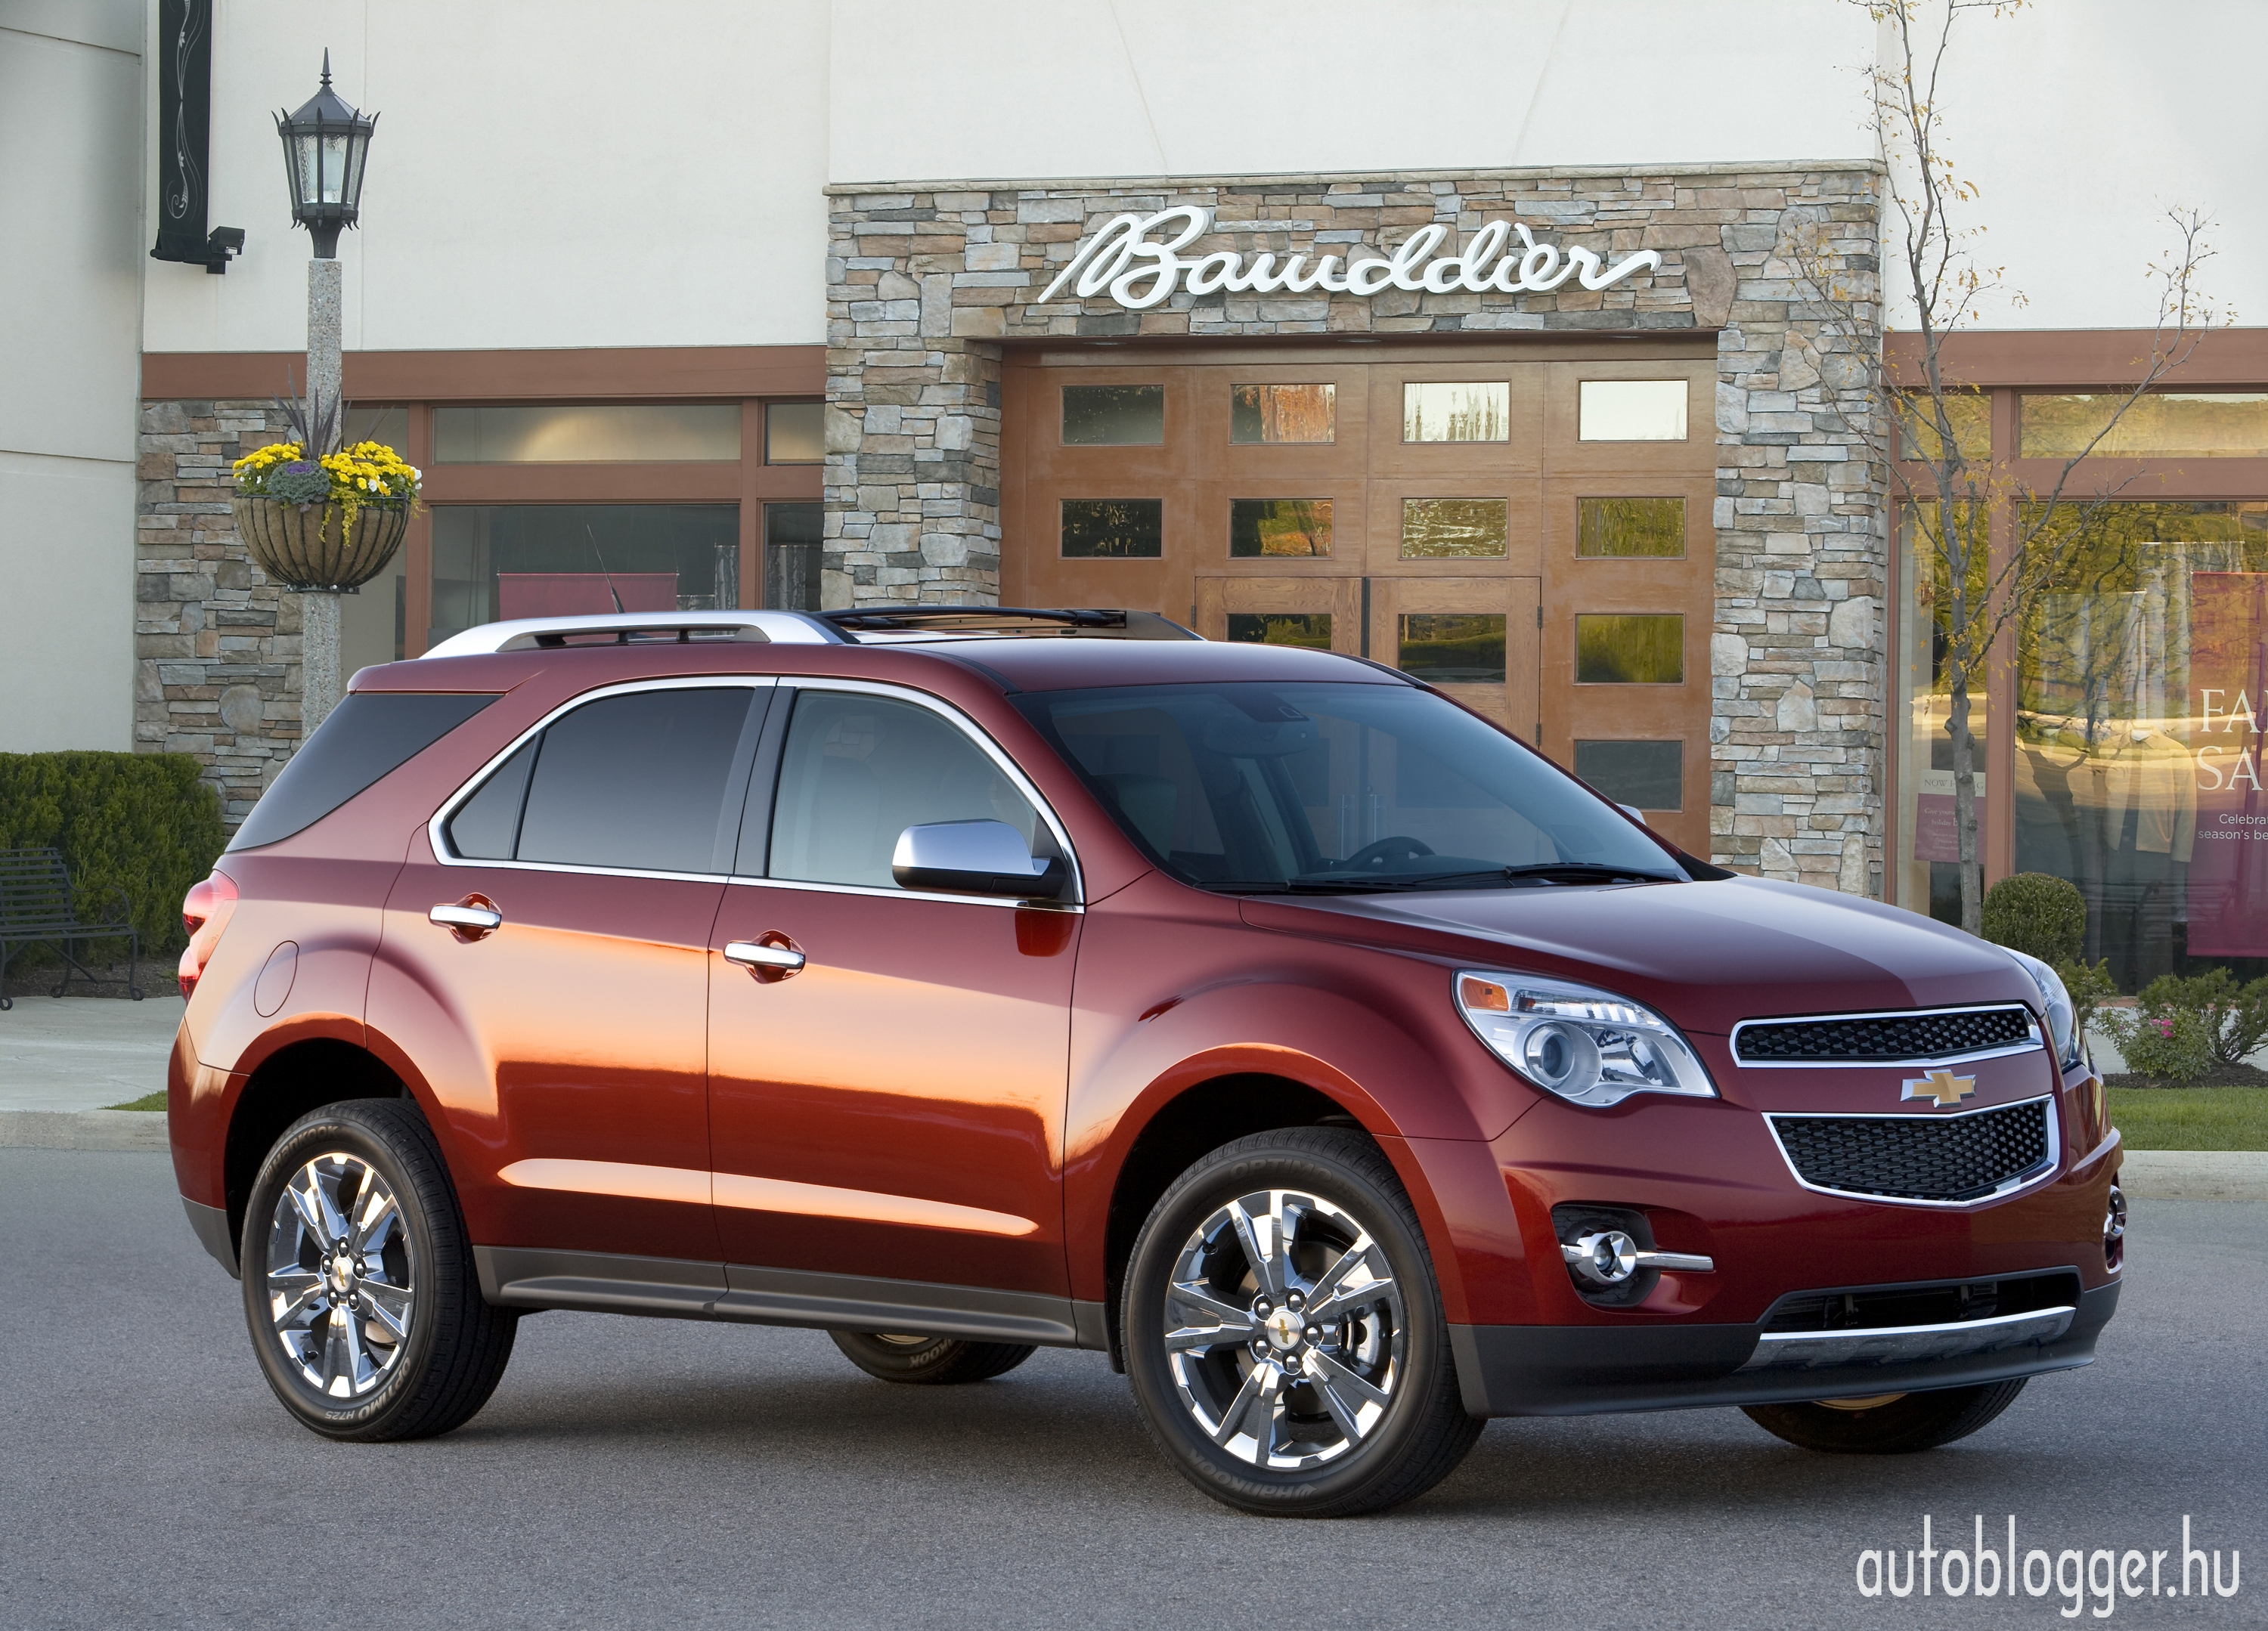 2011 Chevrolet Equinox LTZ. X11CT_EQ001 (06/22/2010) (United States)